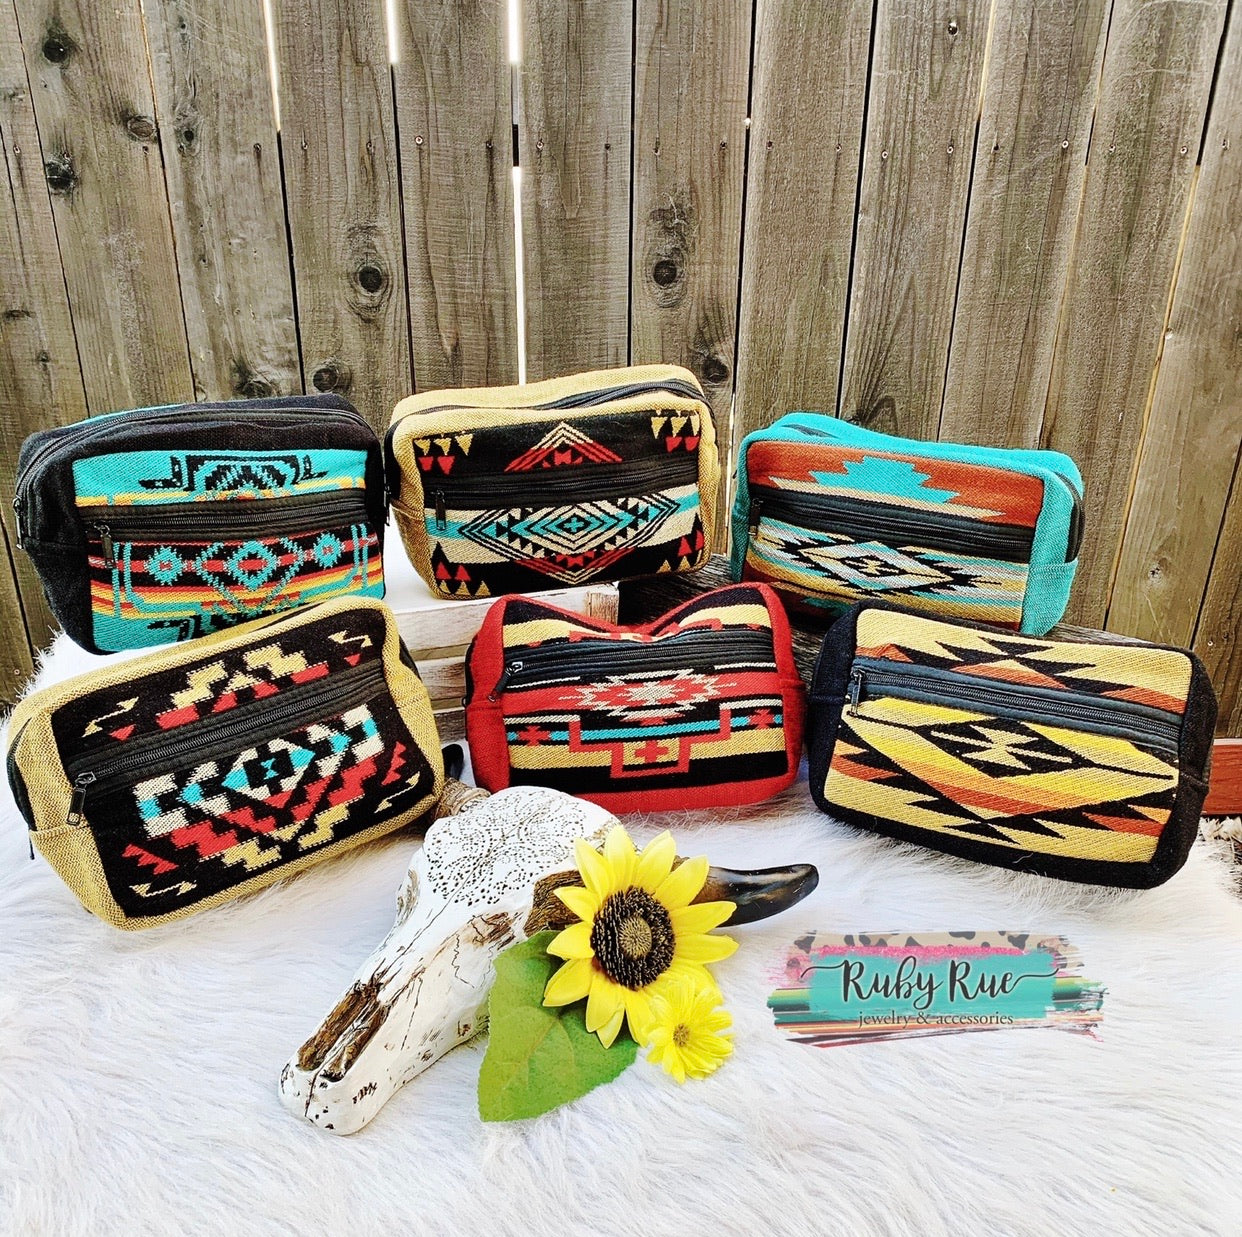 Western Makeup Bags - Ruby Rue Jewelry & Accessories